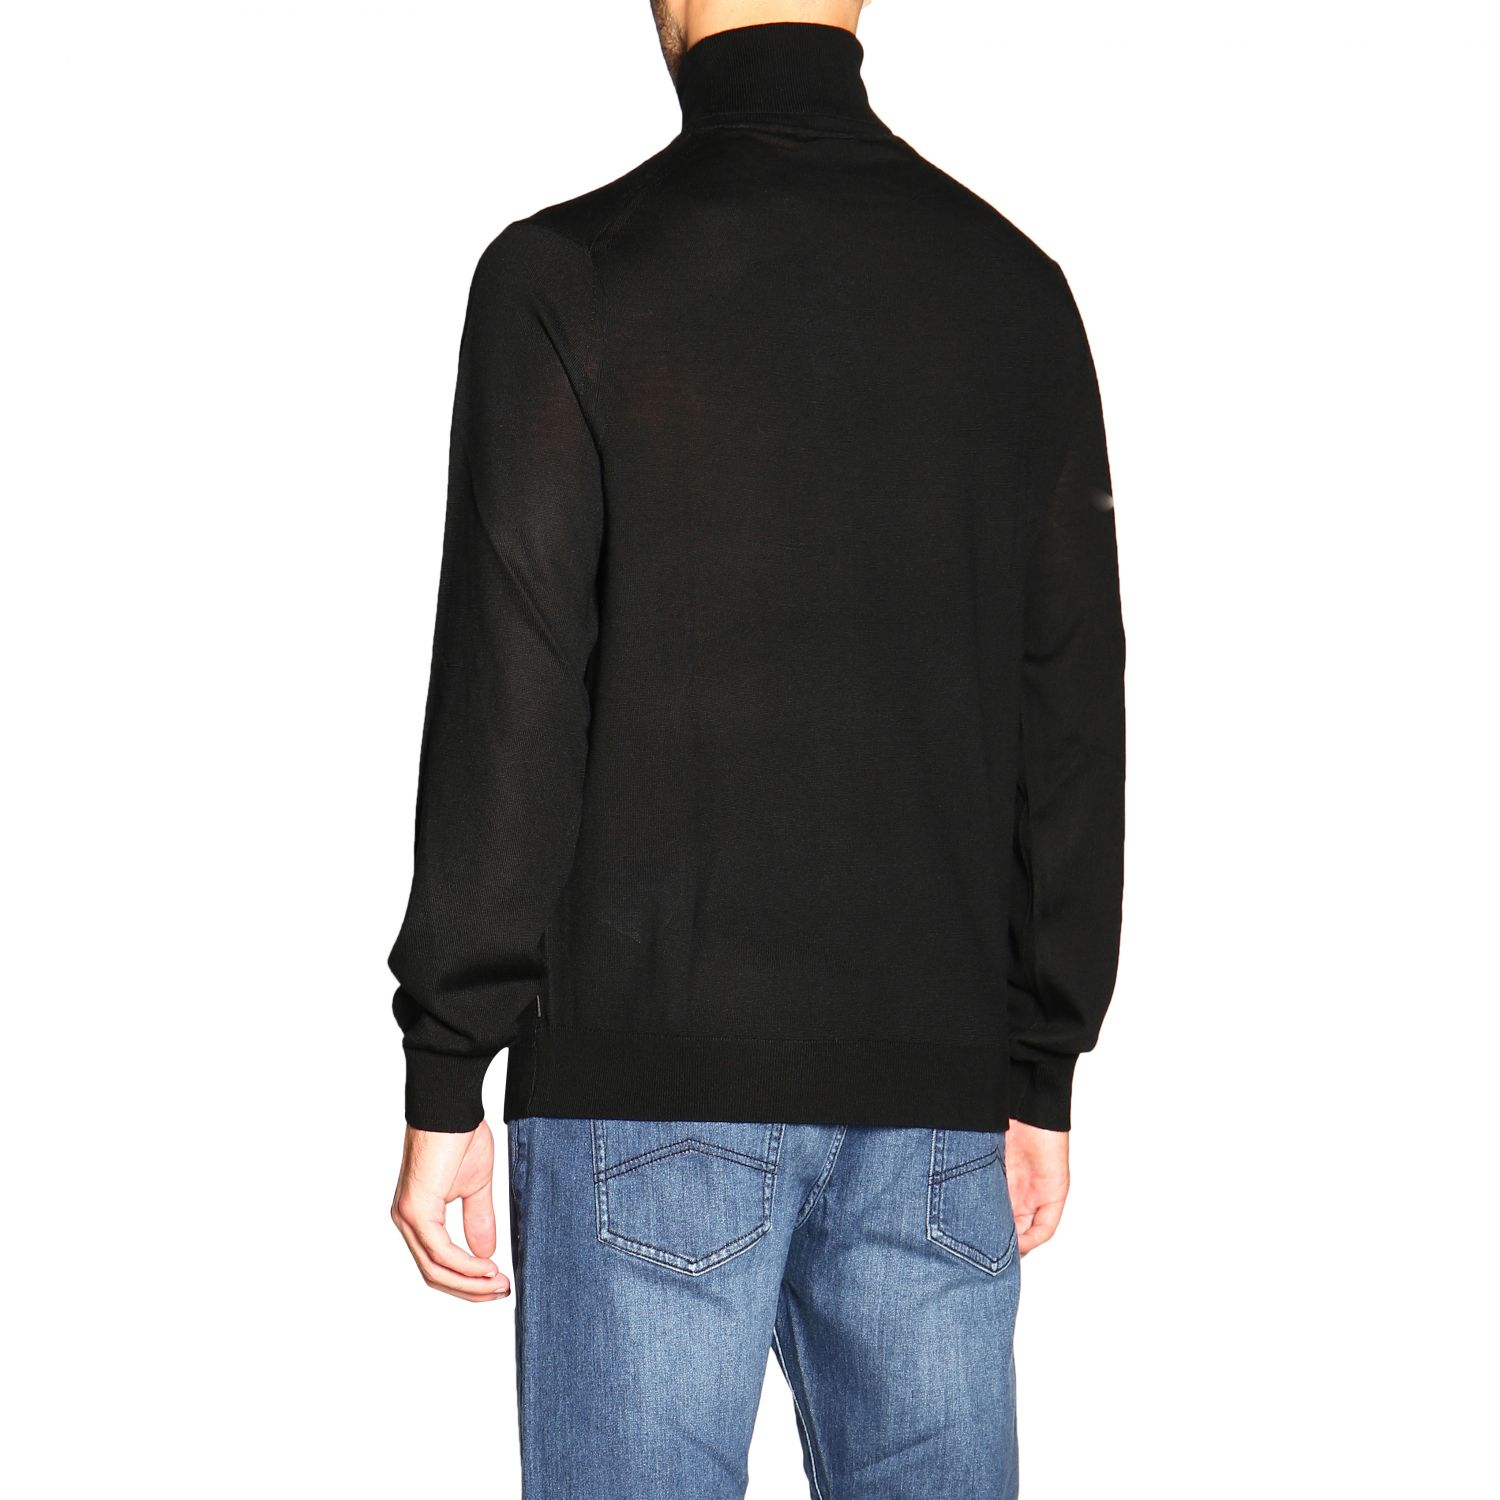 Sweater men Armani Exchange black 3